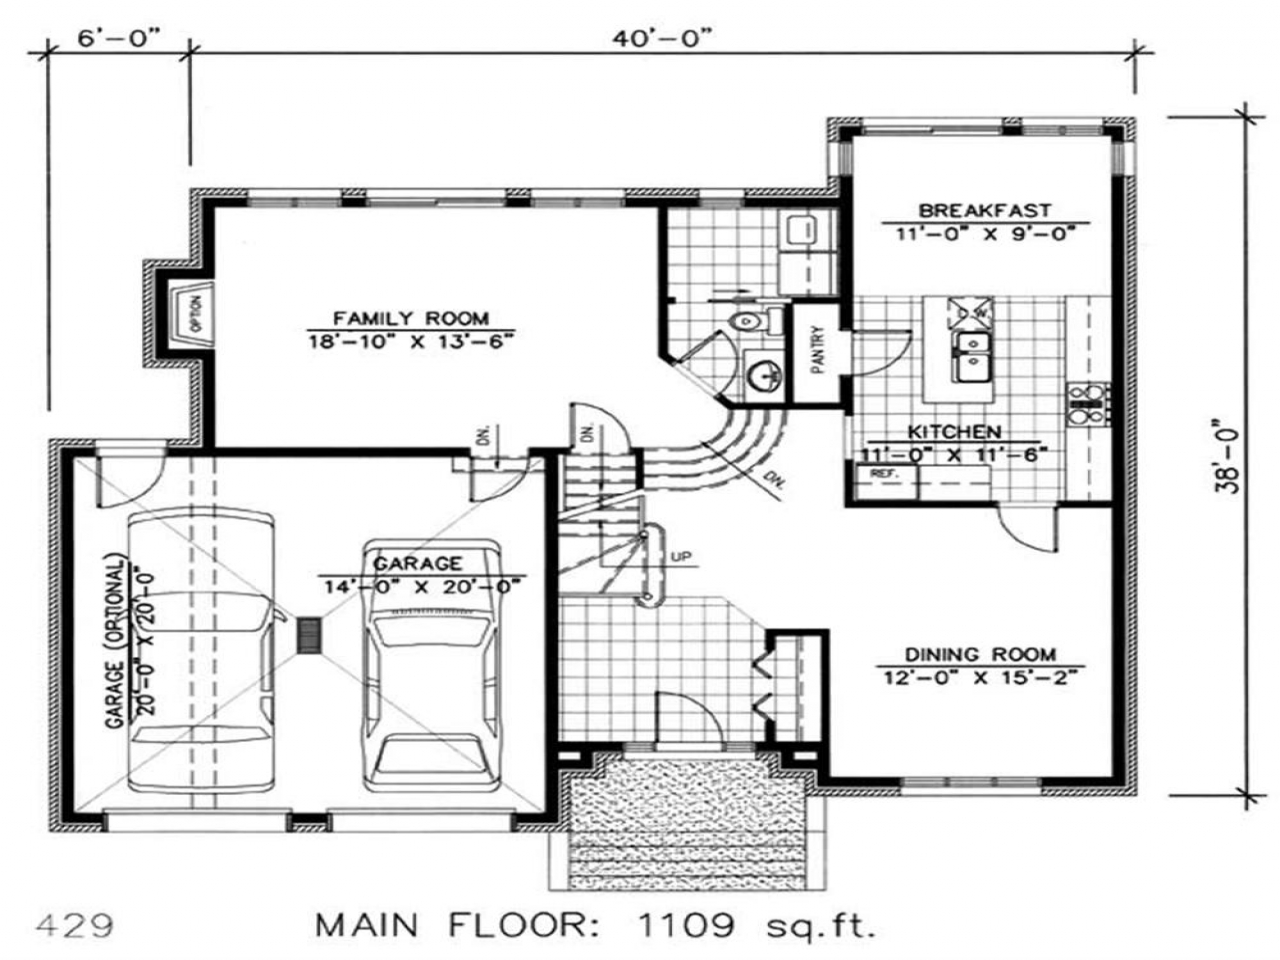 story plan Two-story homes offer distinct advantages: they maximize the lot by building up instead of out, are well-suited for view lots, and offer greater privacy for bedrooms.